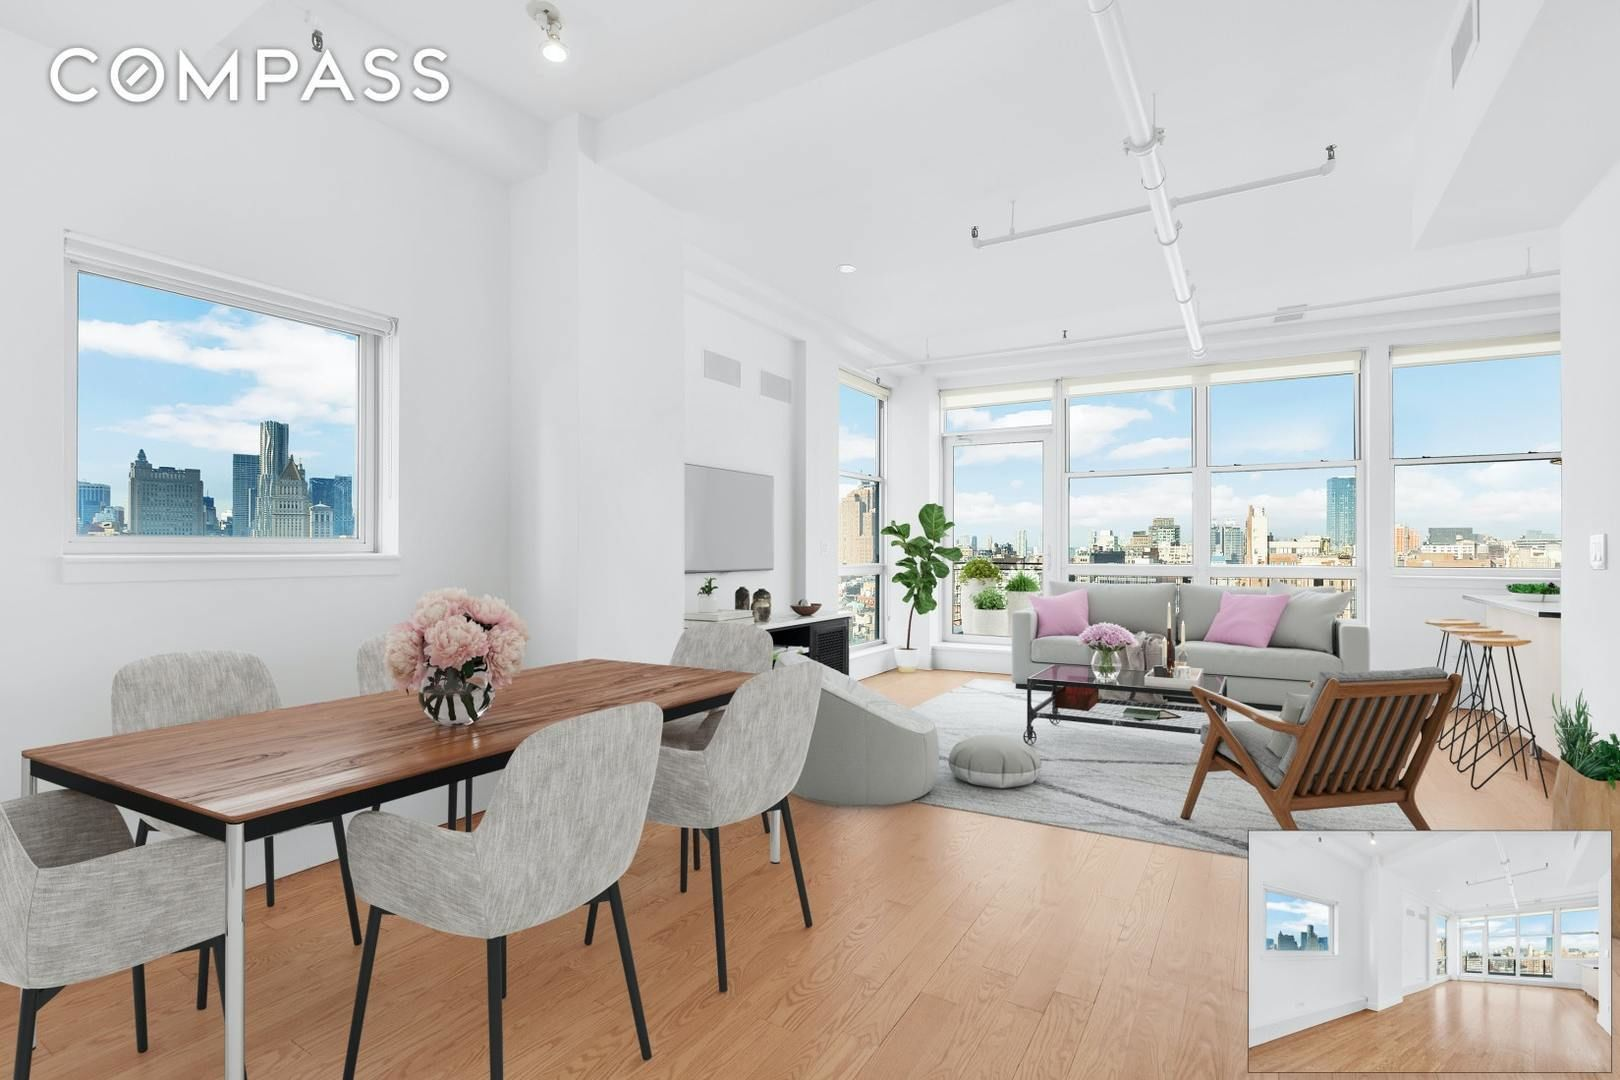 Apartment for sale at 195 Bowery, Apt 14